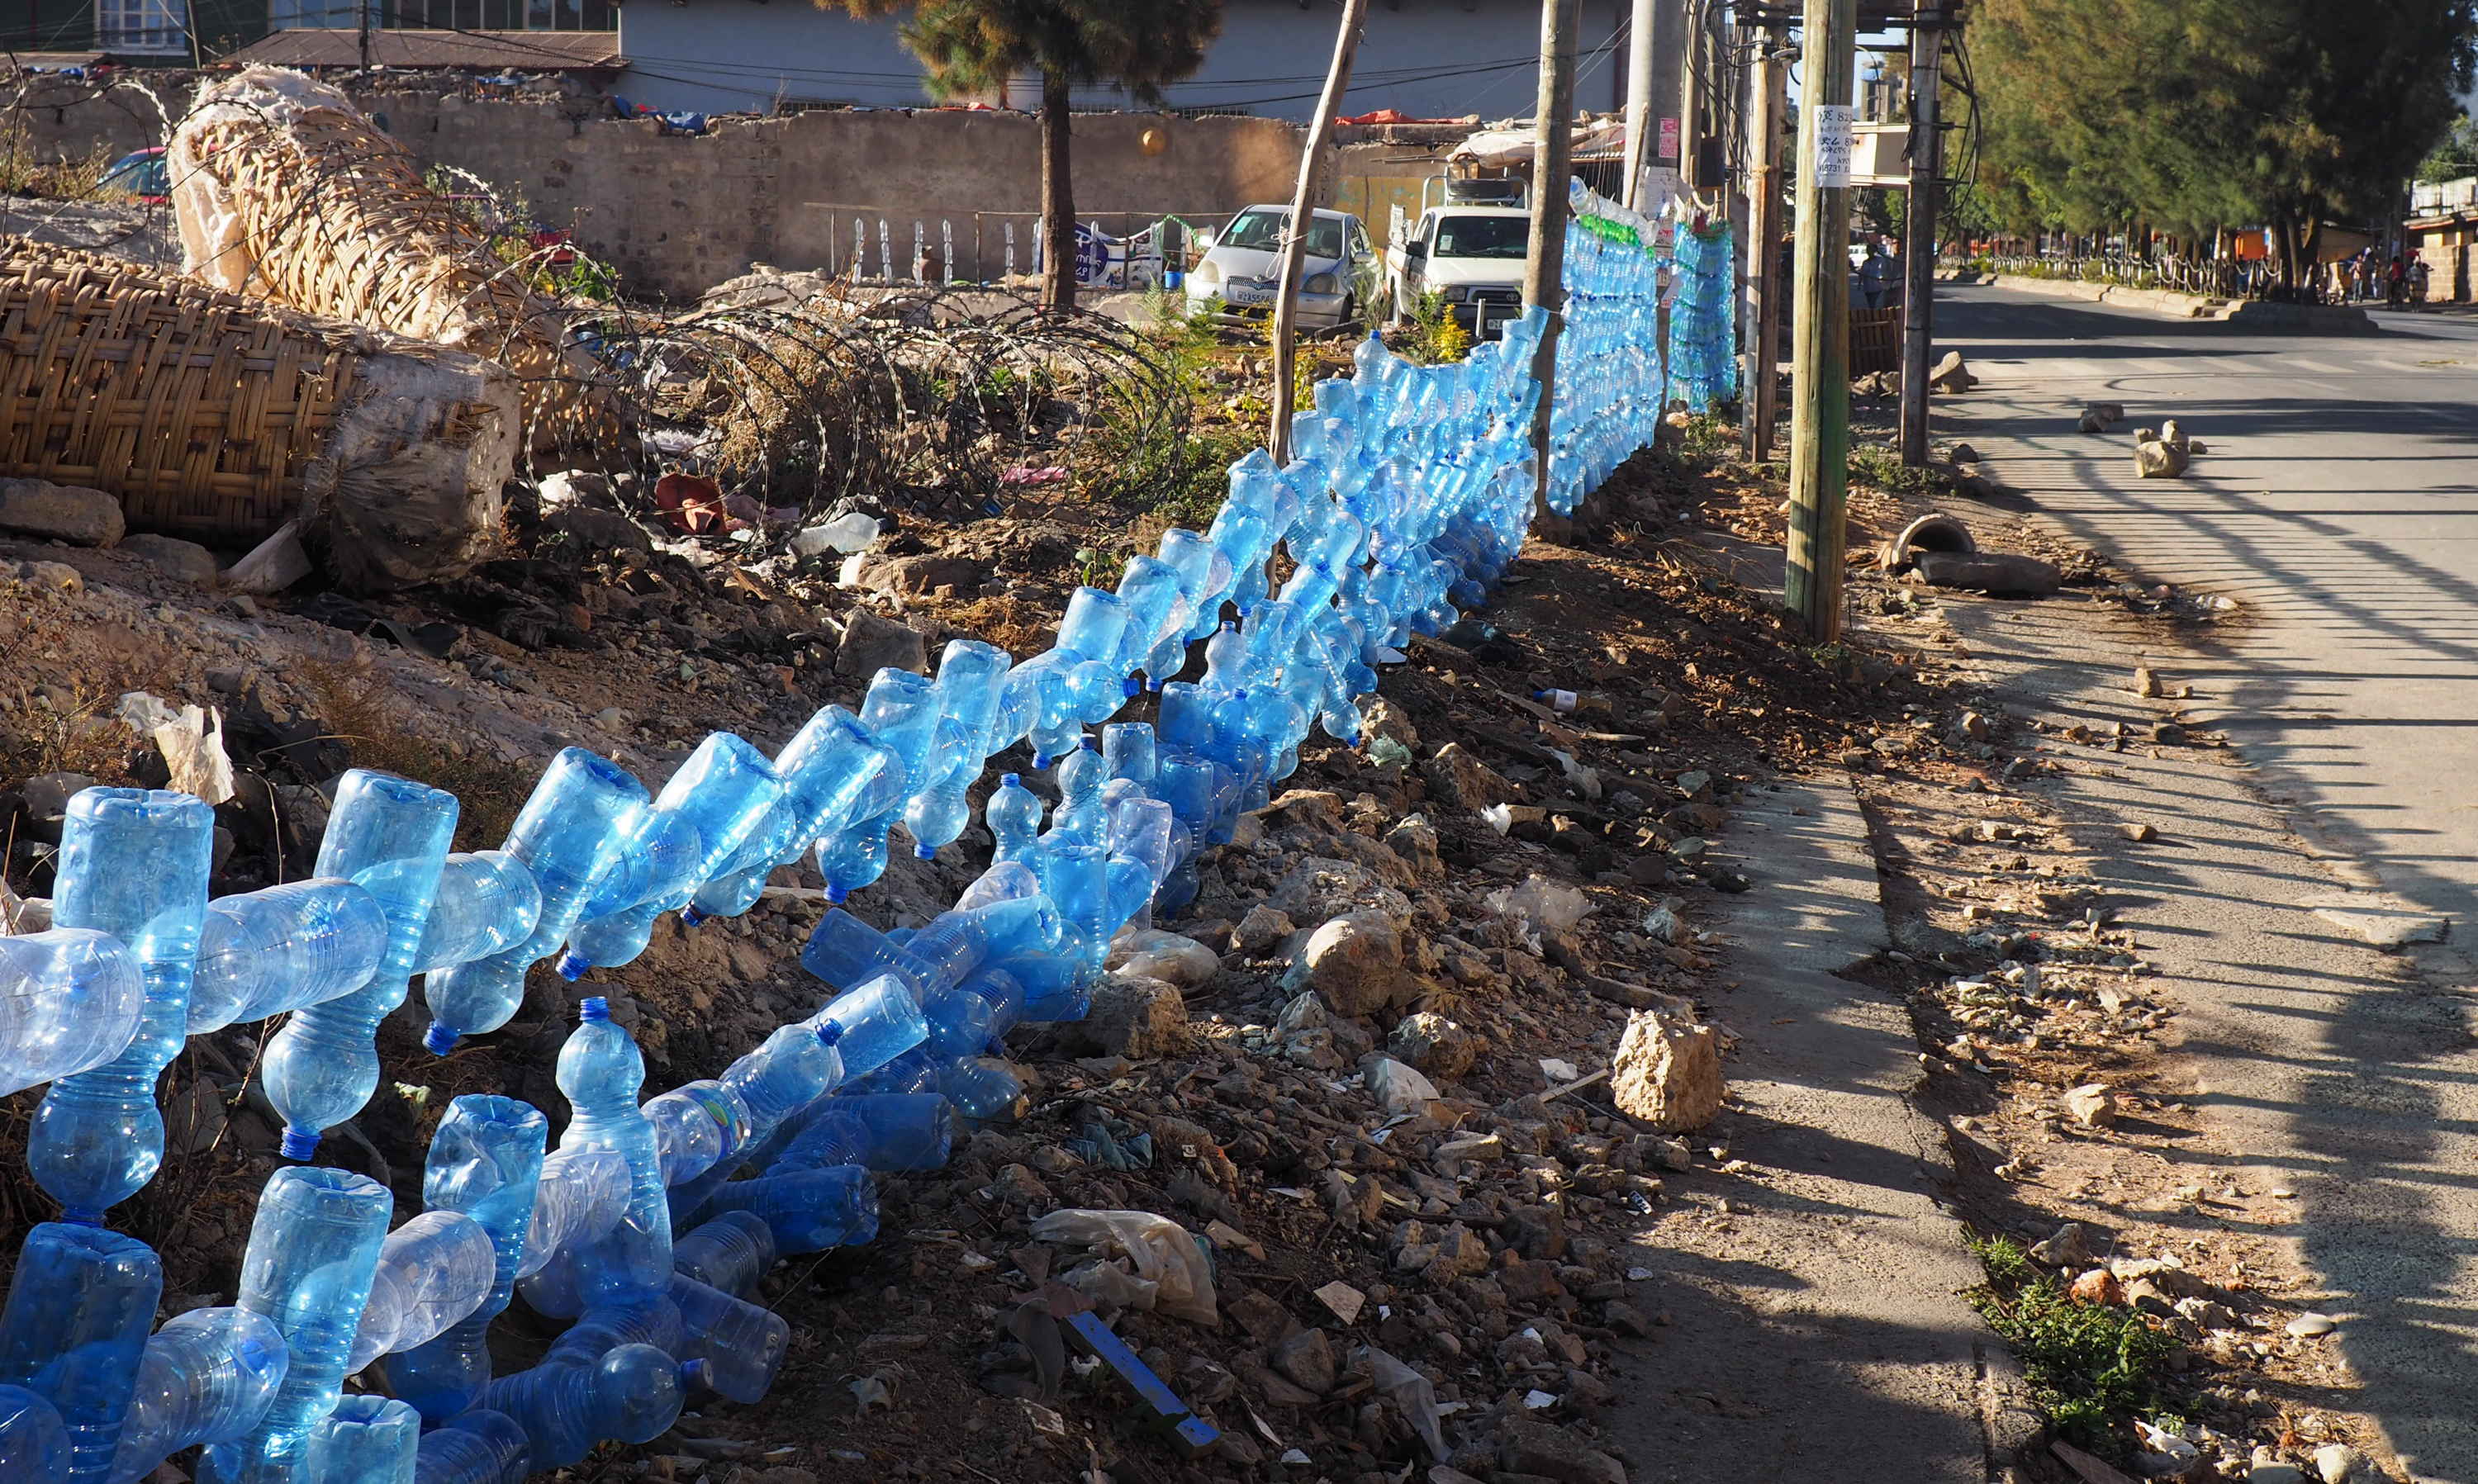 Fence made of re-purposed plastic bottles -- a common sight in Addis